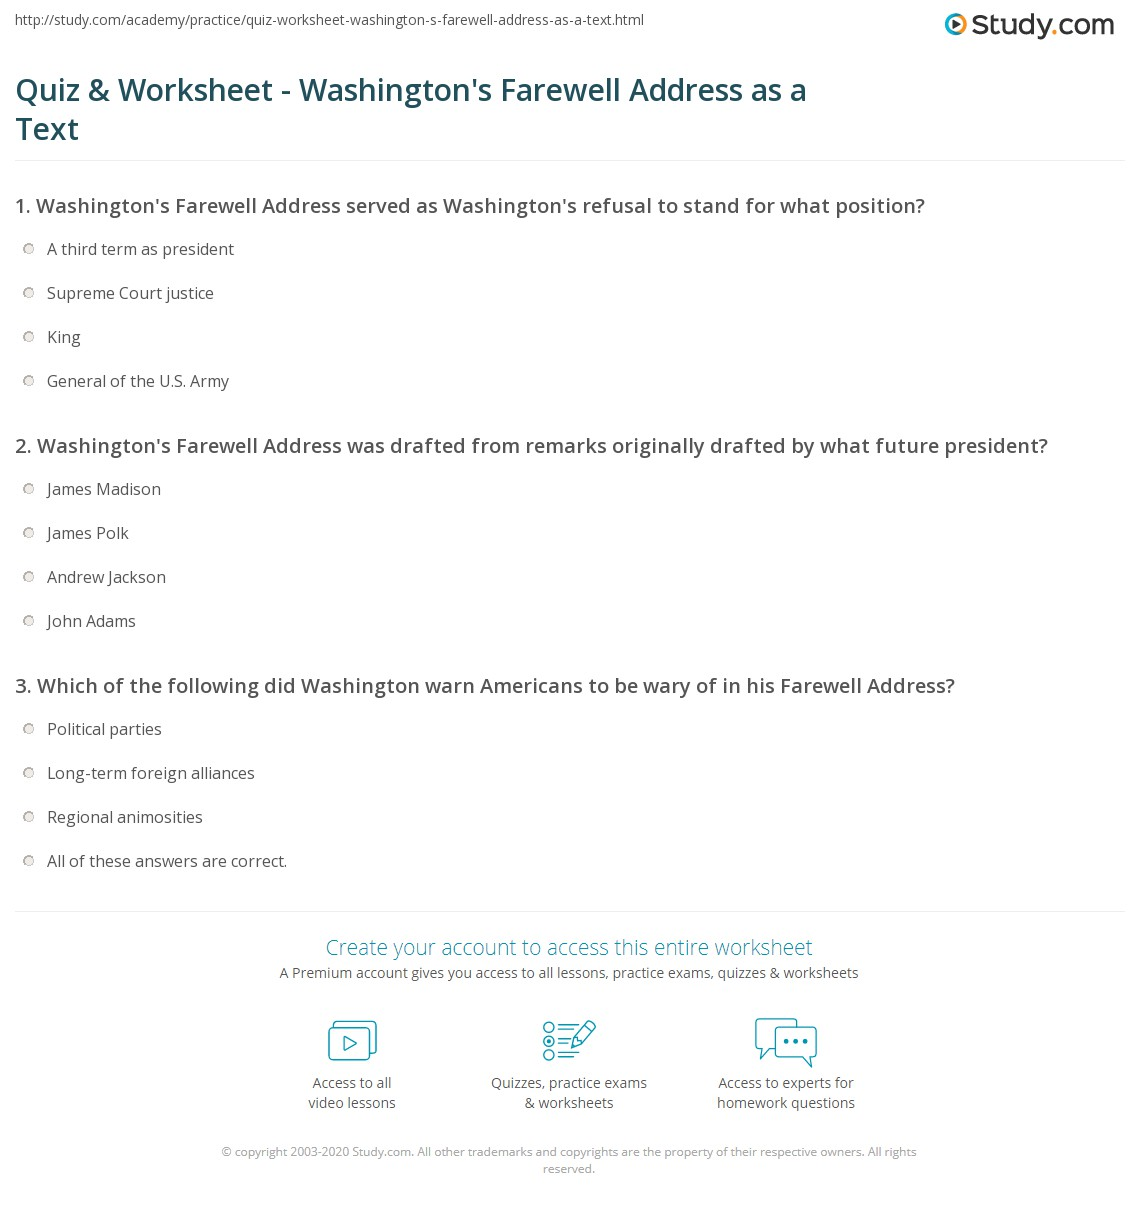 george washingtons mount quiz worksheet washington 39 s farewell address as a text study com essay on george